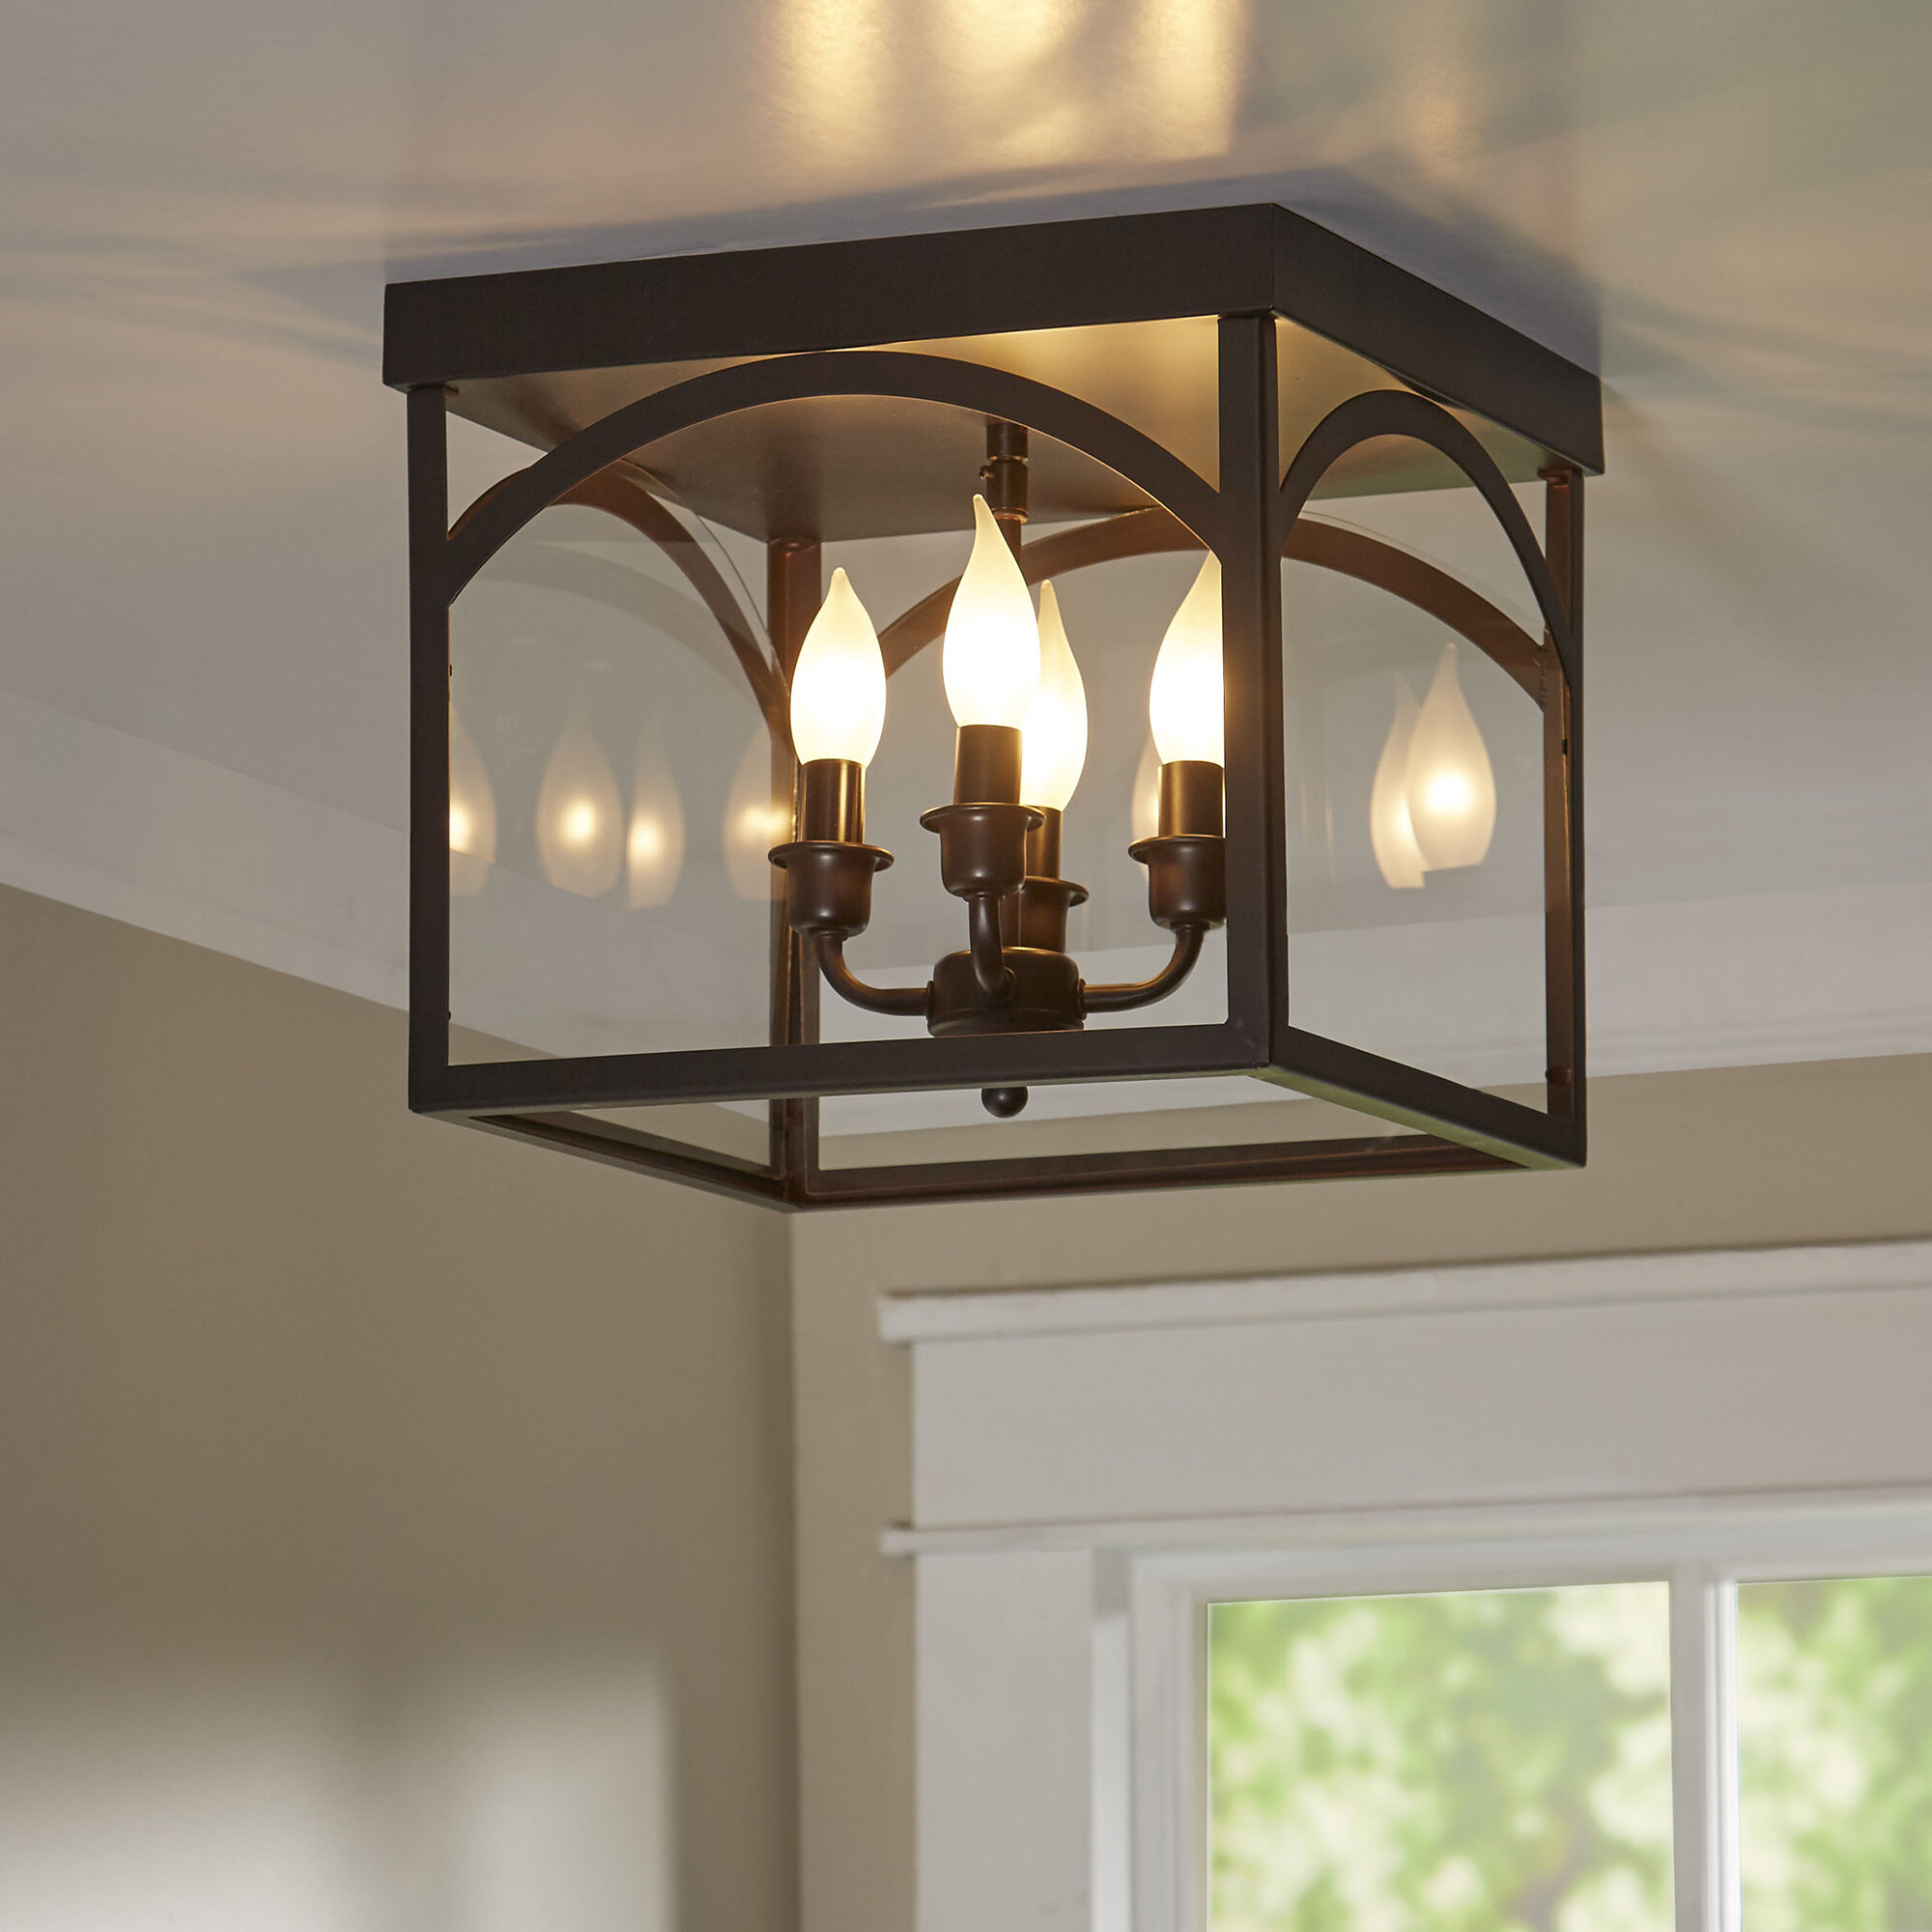 Laurel foundry modern farmhouse mount airy 4 light flush mount reviews wayfair